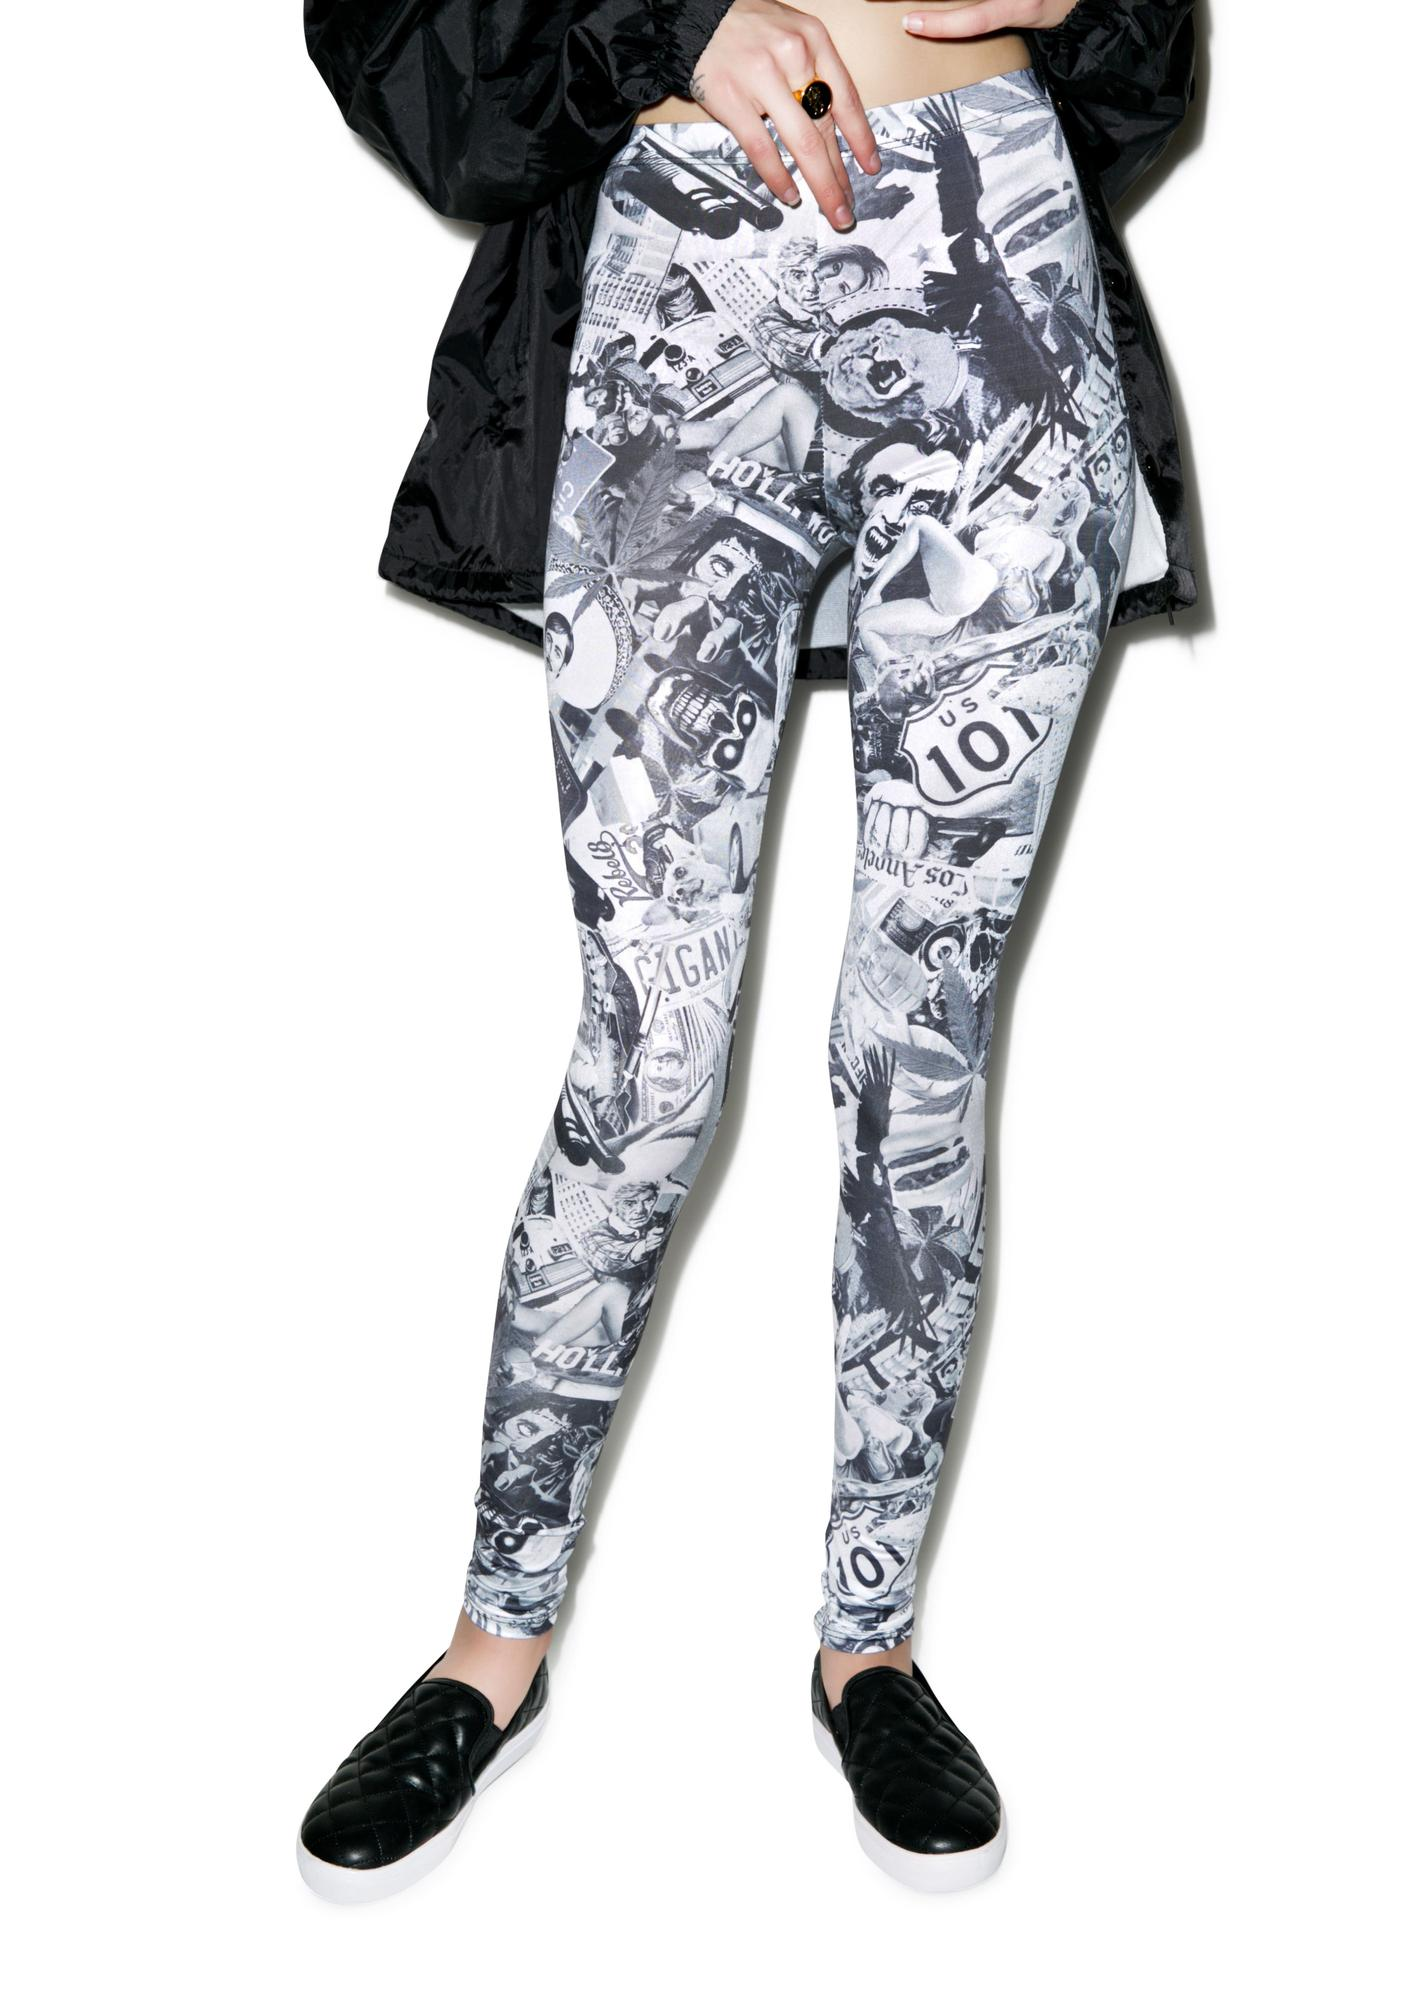 Rebel8 Killa Kollage Leggings